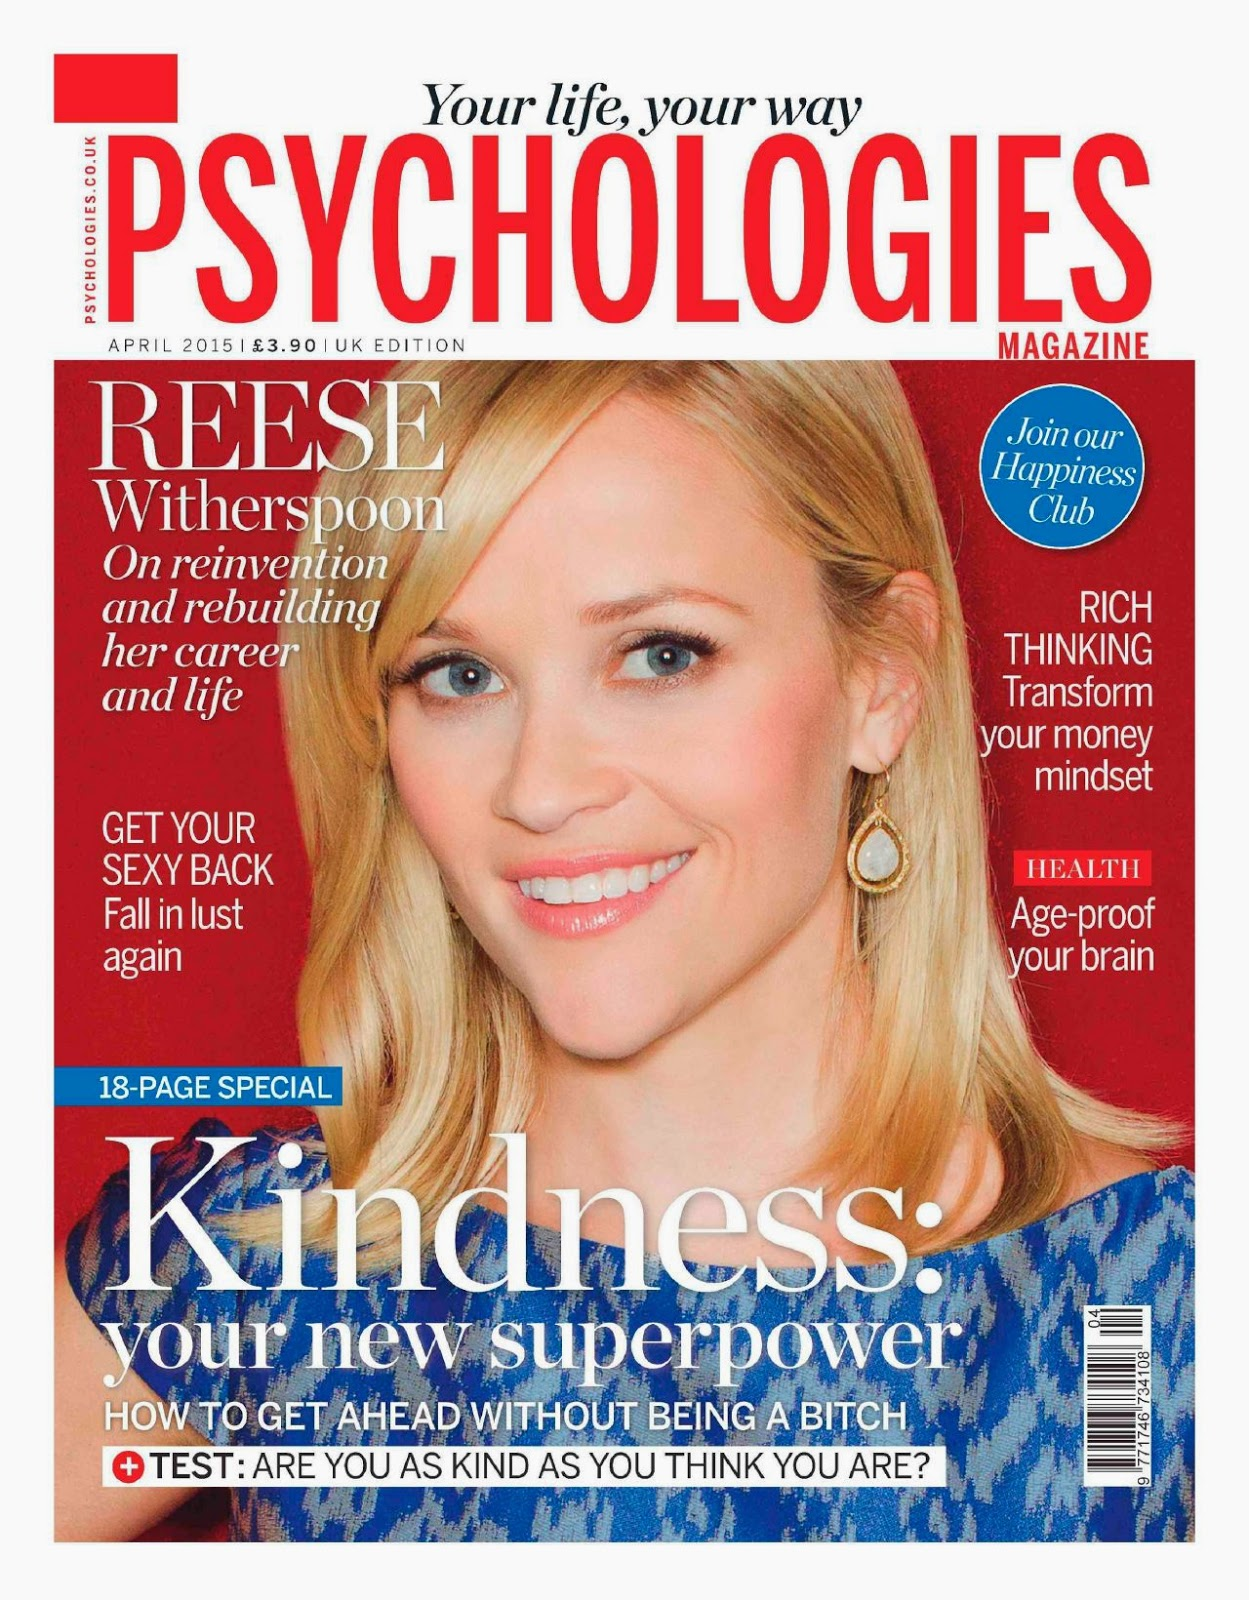 Actress, Singer: Reese Witherspoon - Psychologies UK April 2015